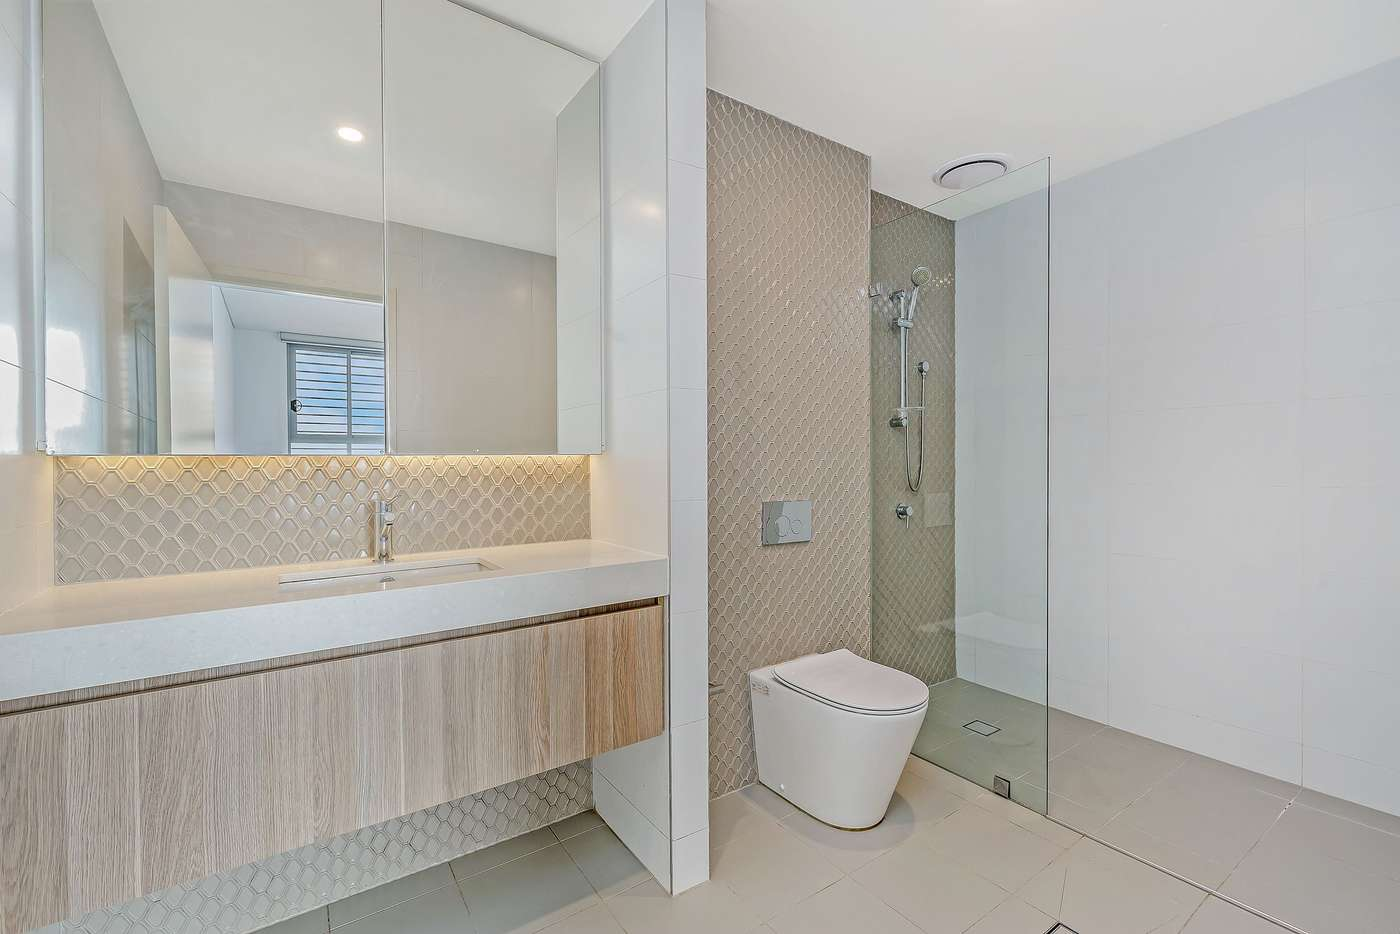 Sixth view of Homely apartment listing, 124/2-8 James Street, Carlingford NSW 2118